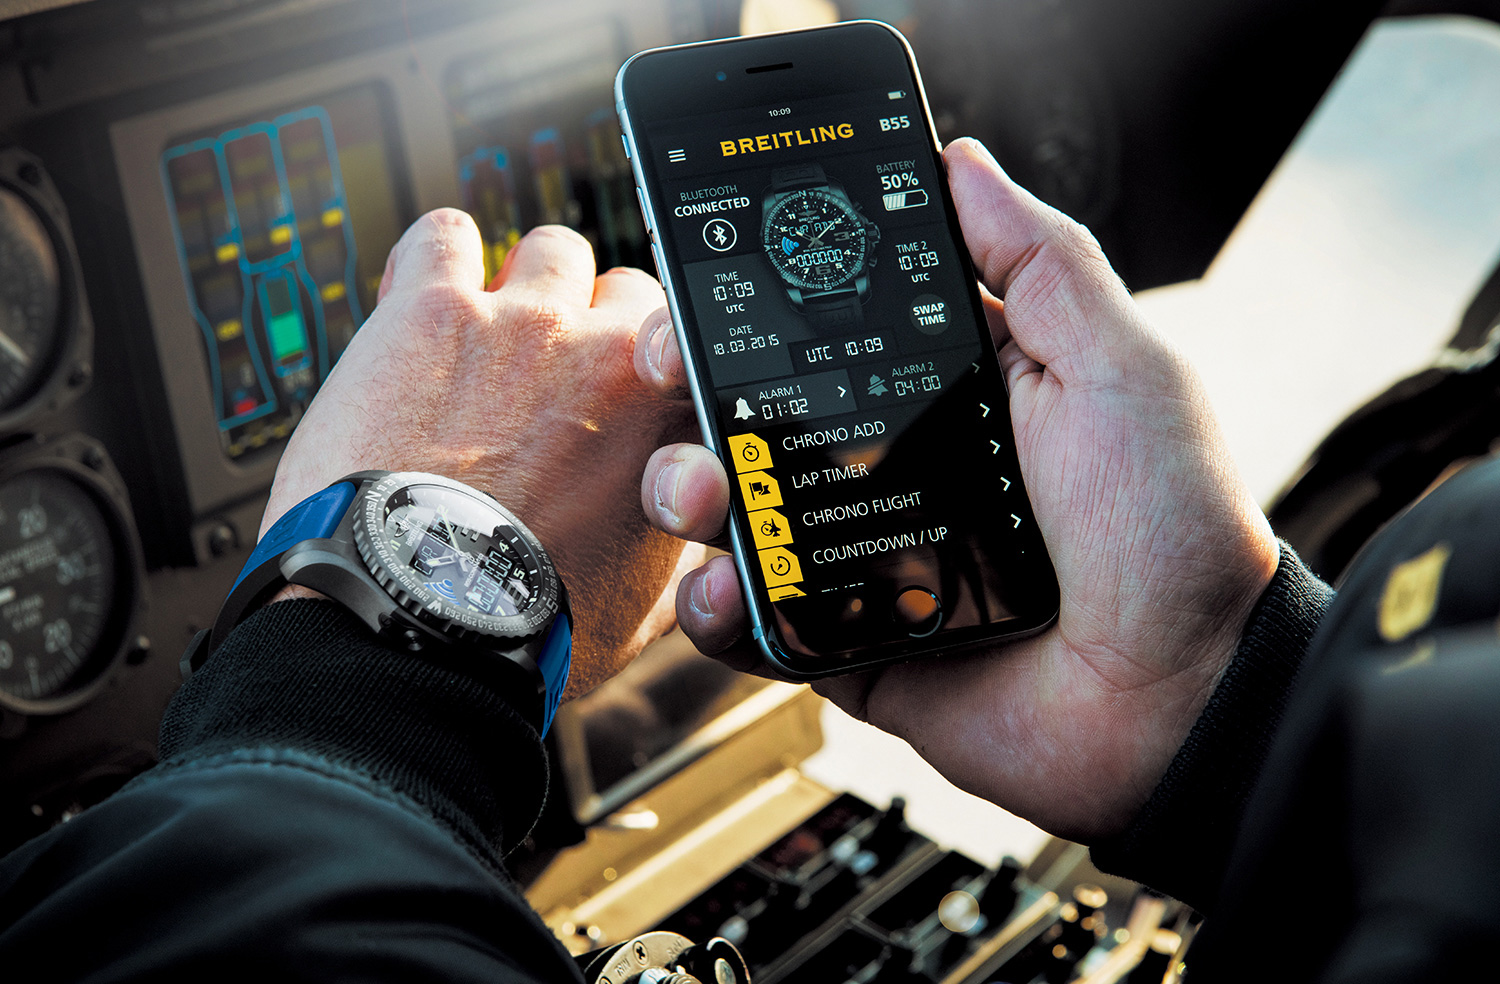 Breitling – Instruments for Professionals